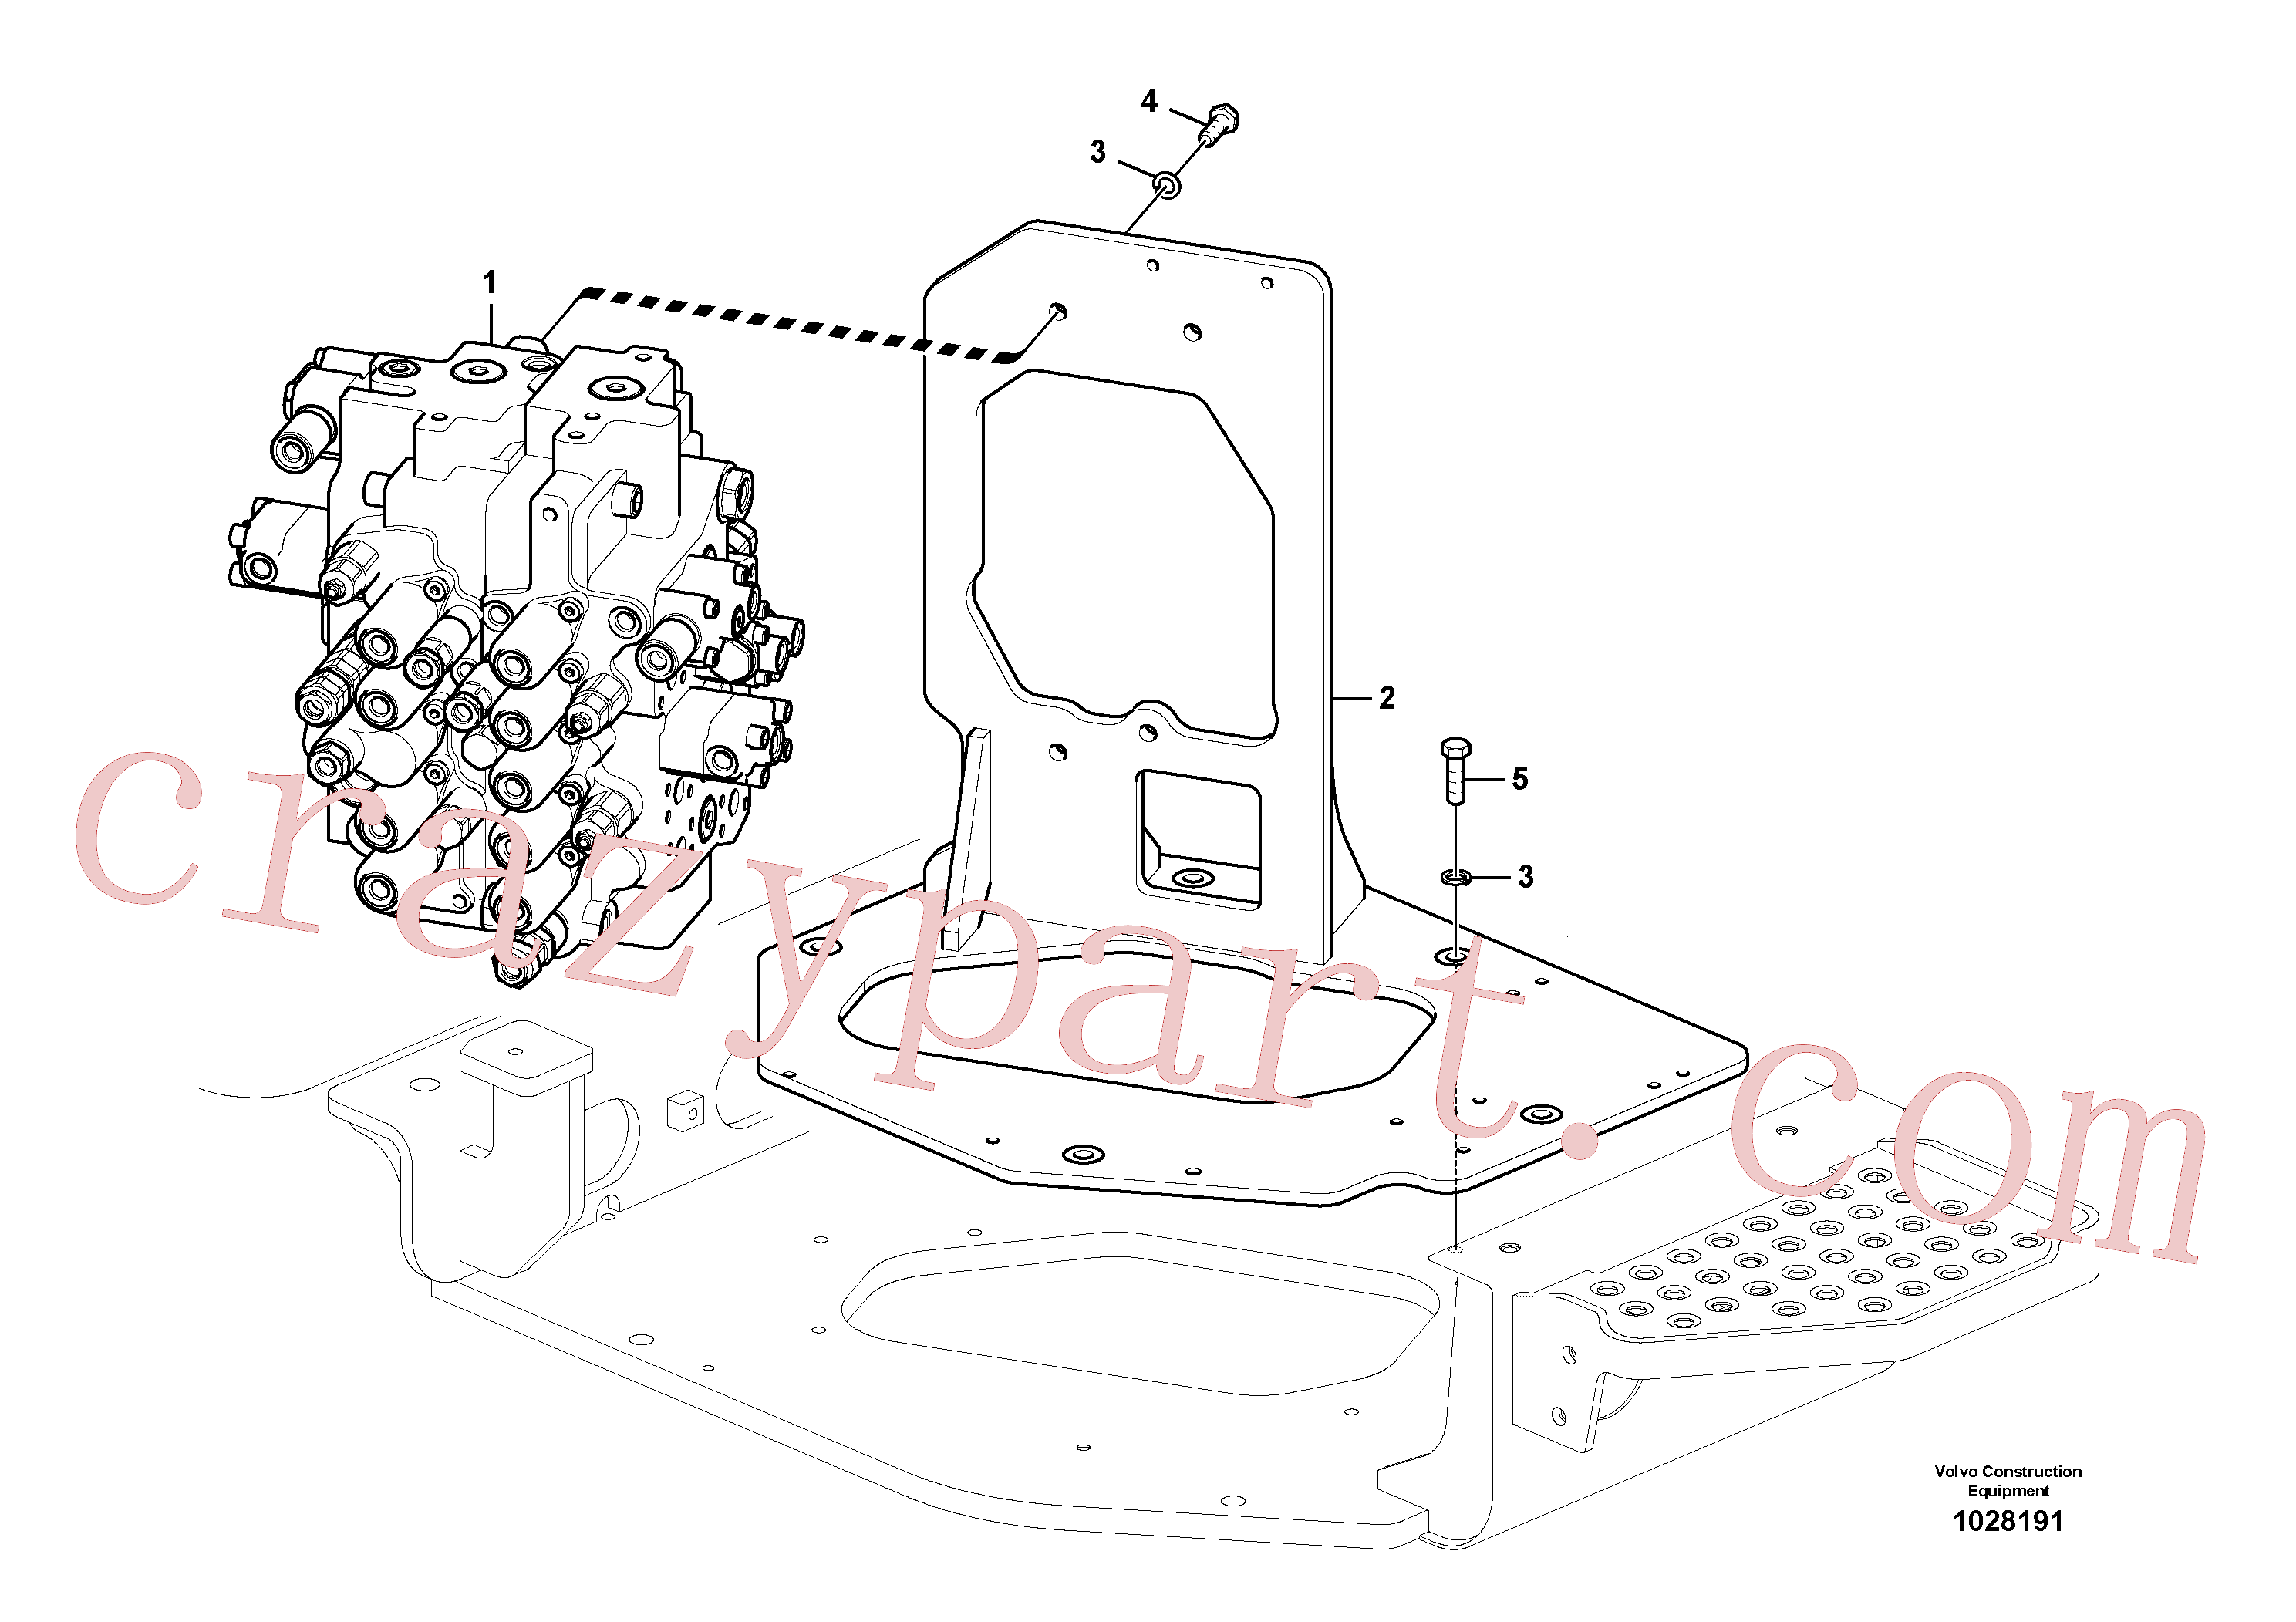 SA9011-11207 for Volvo Control valve with fitting parts.(1028191 assembly)